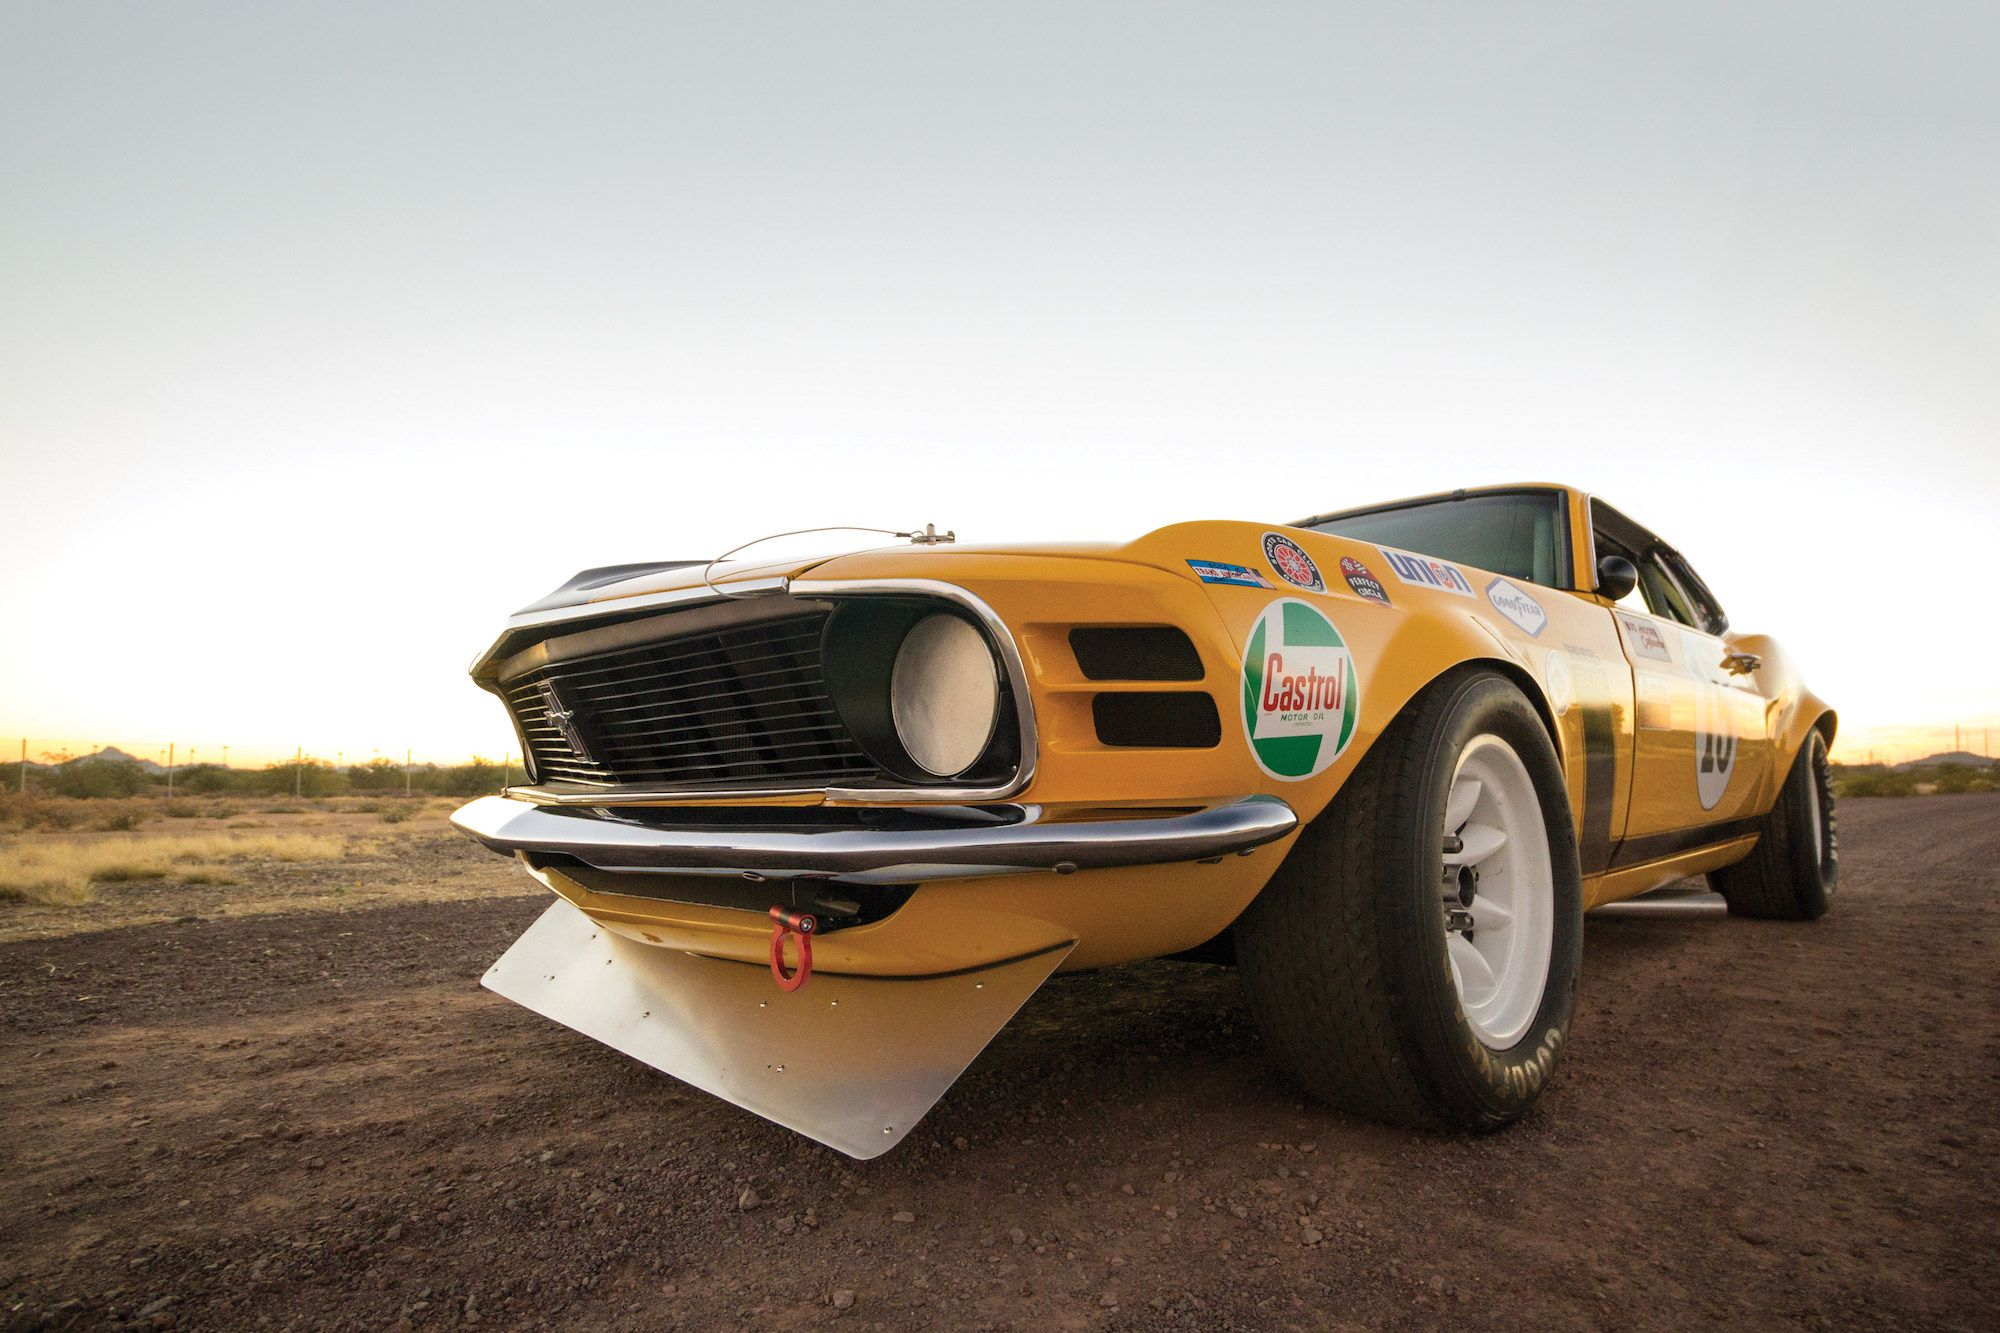 1970 ford mustang boss 302 kar kraft trans am ford mustang boss mustang boss and mustang boss 302